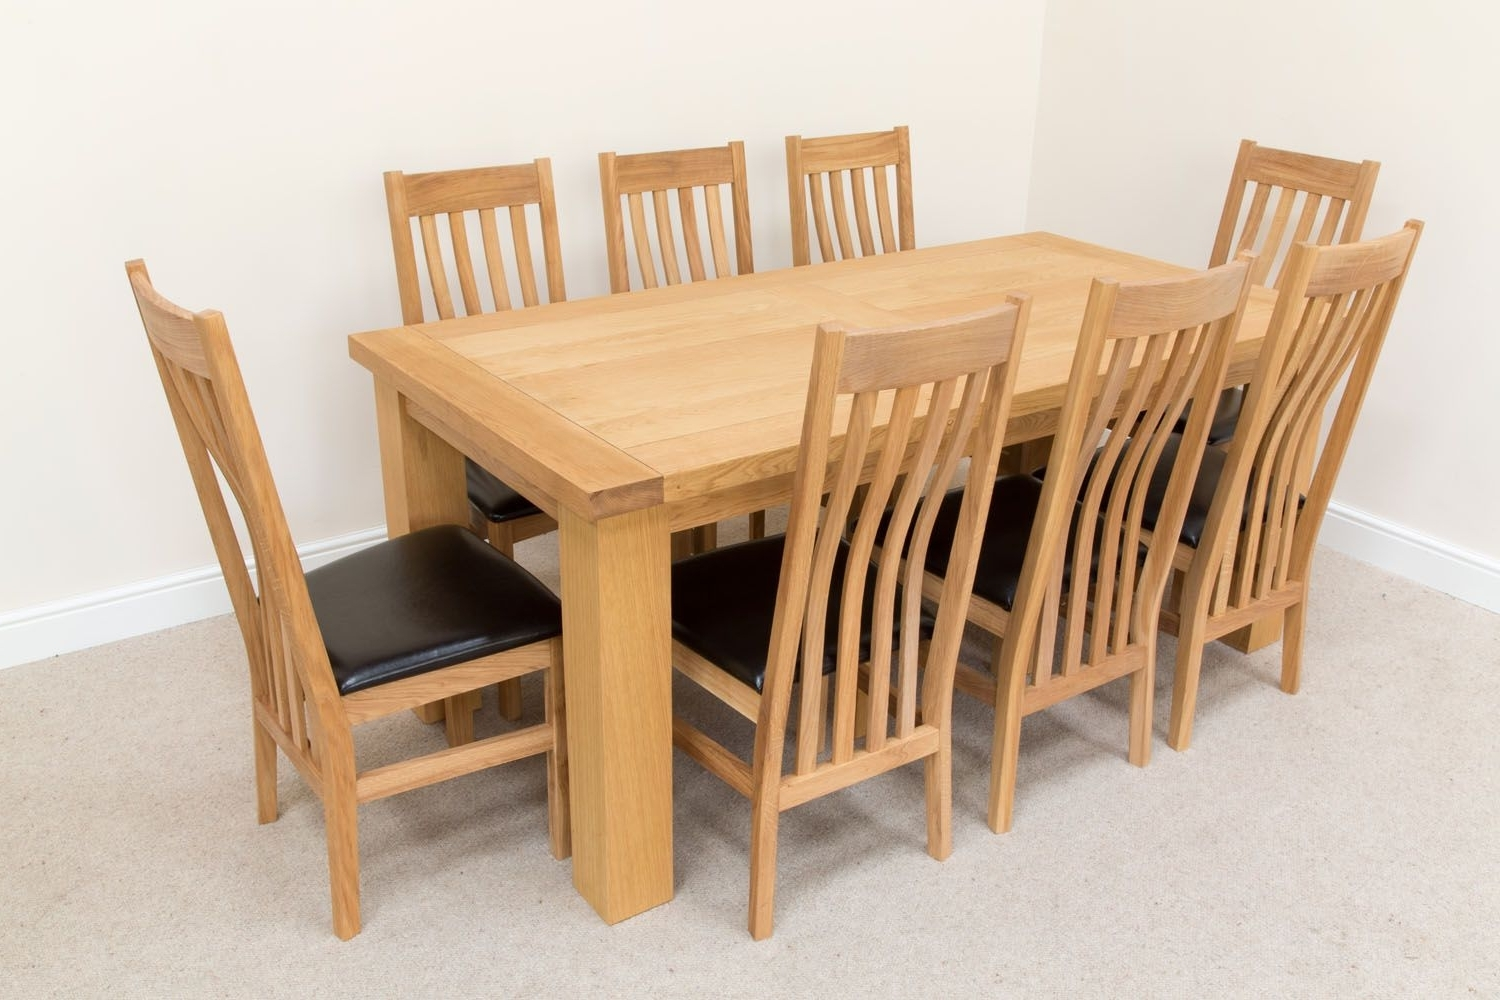 2017 Riga Oak Table 8 Seater Winchester Brown Chair Dining Set intended for Dining Tables For 8